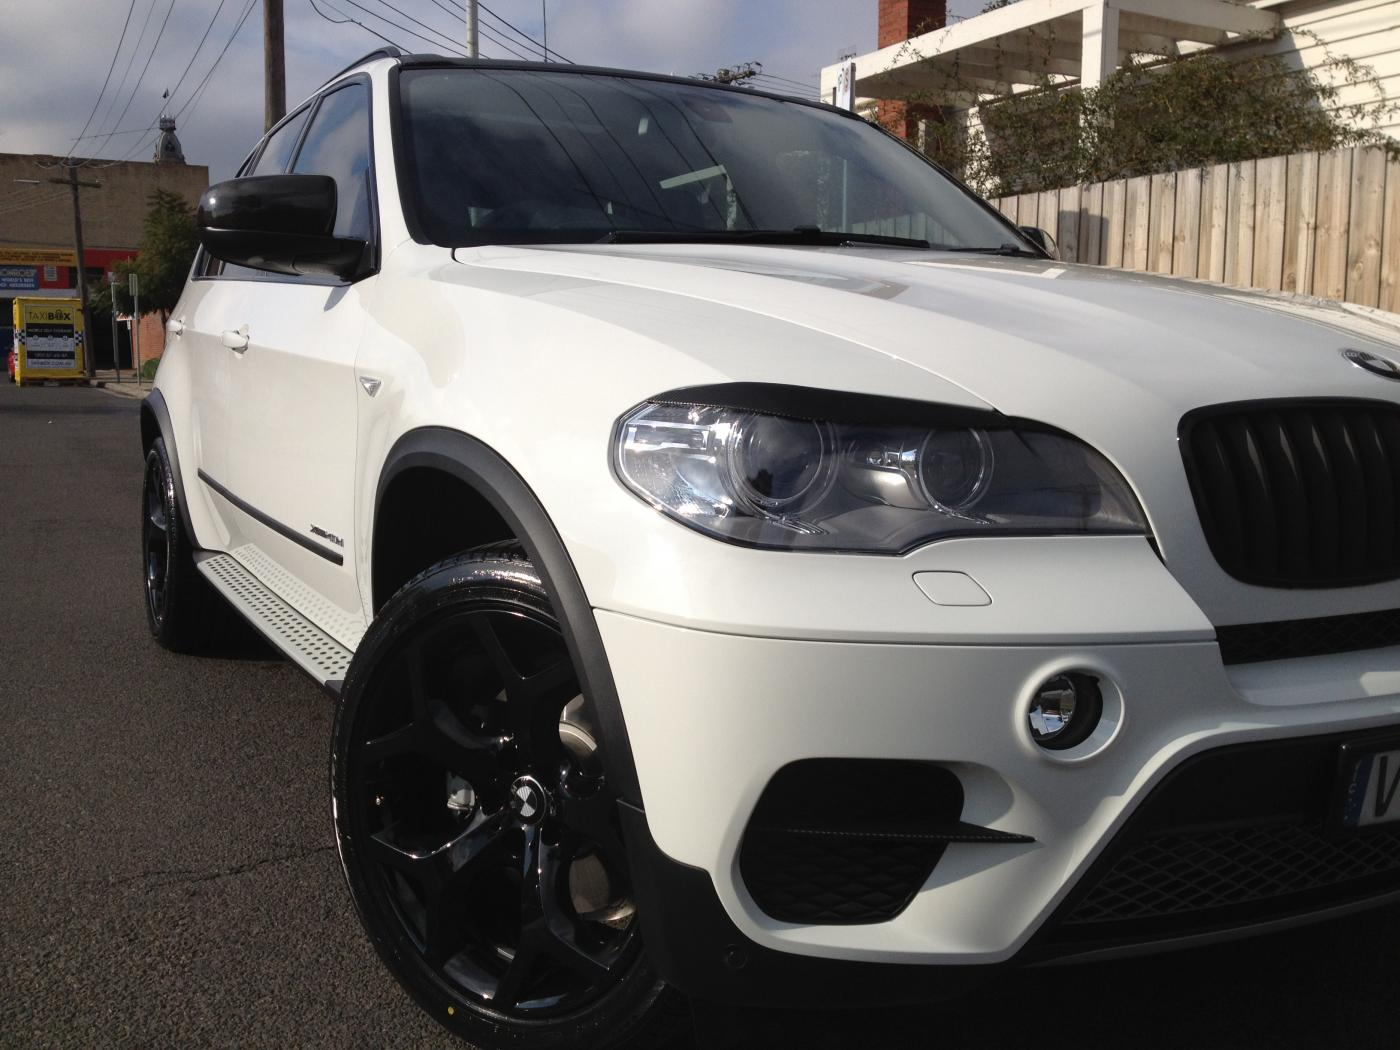 my new white x5 40d with some carbon fibre wrapping attached images